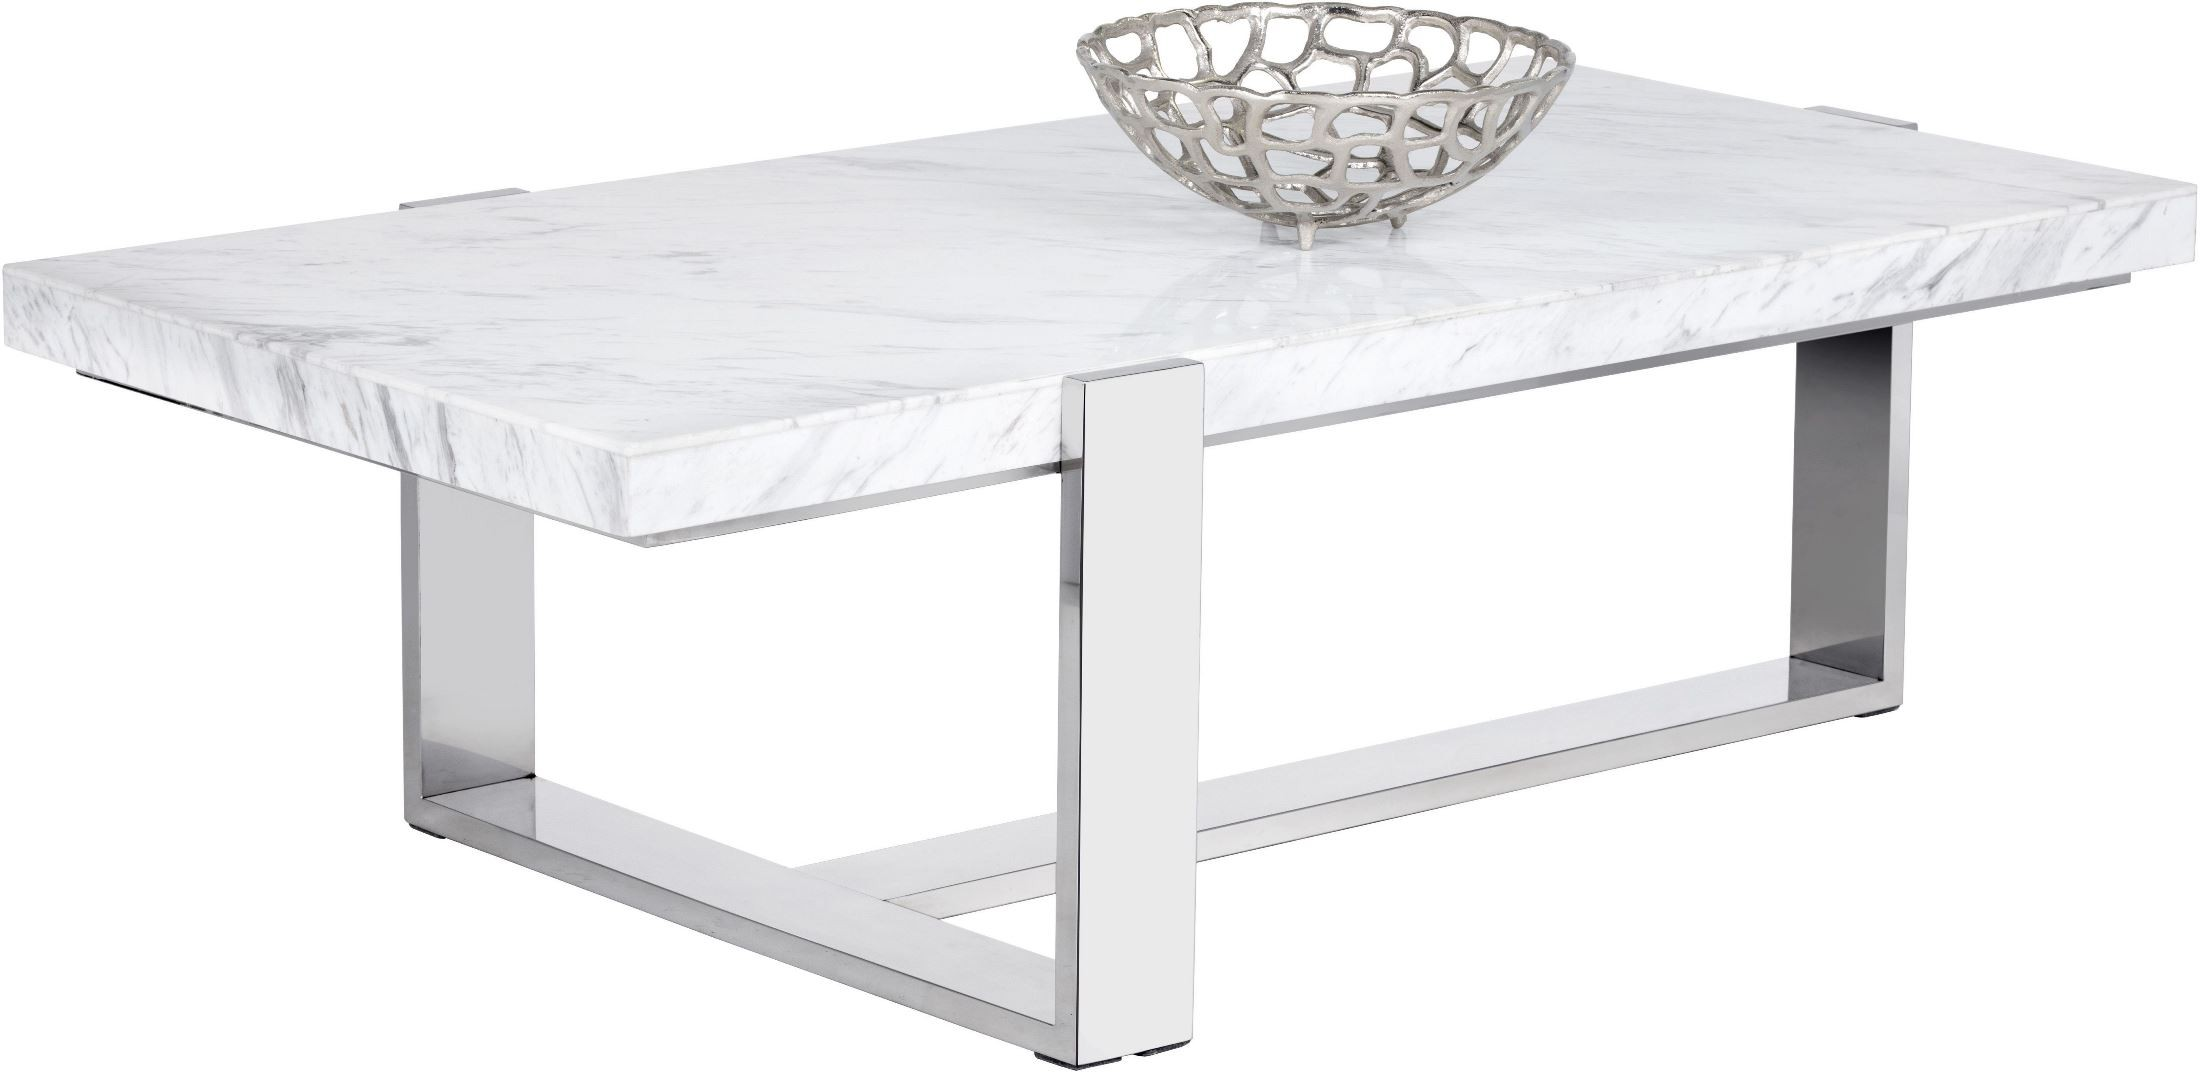 Tribecca white marble rectangular coffee table 101294 White marble coffee table